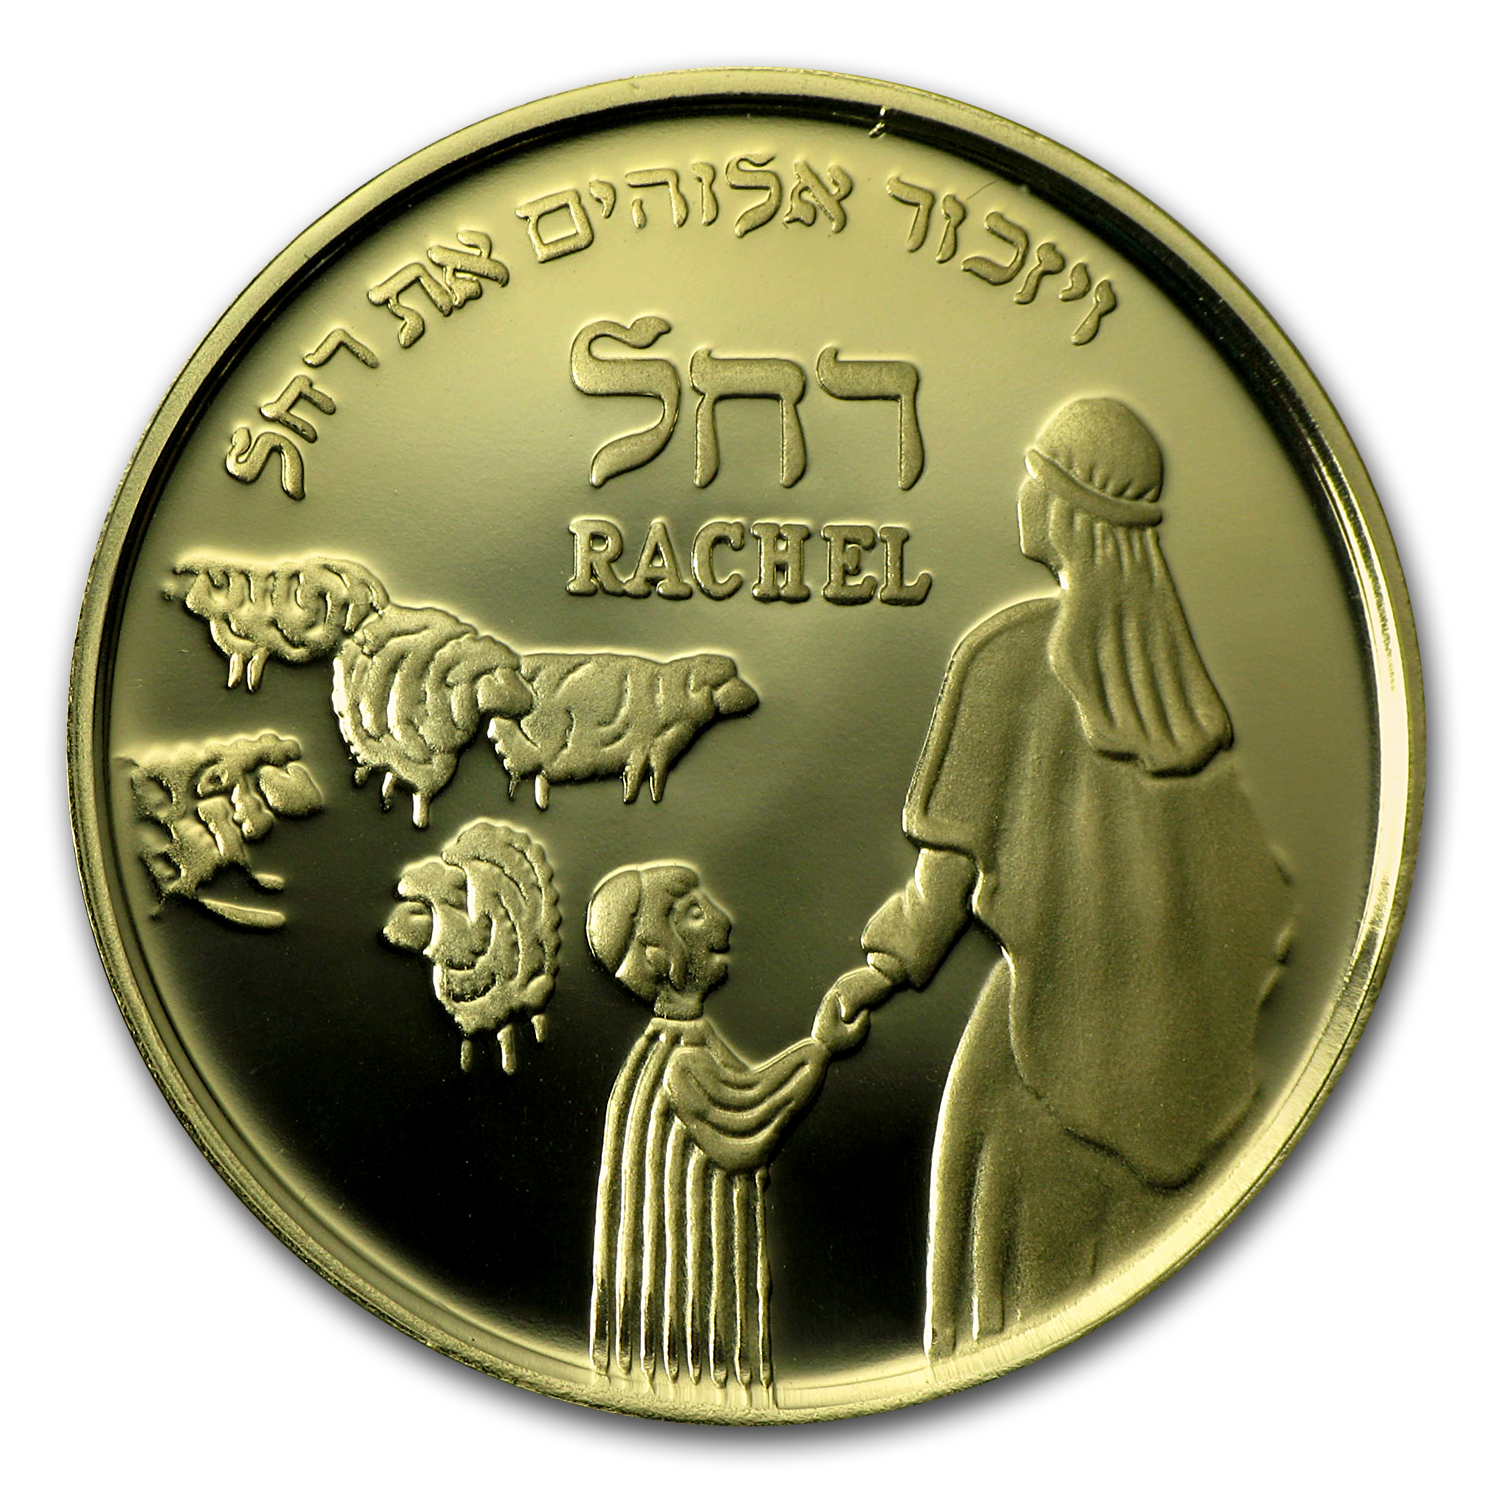 2008 Israel Proof Gold Medal Rachel (AGW .32 oz)